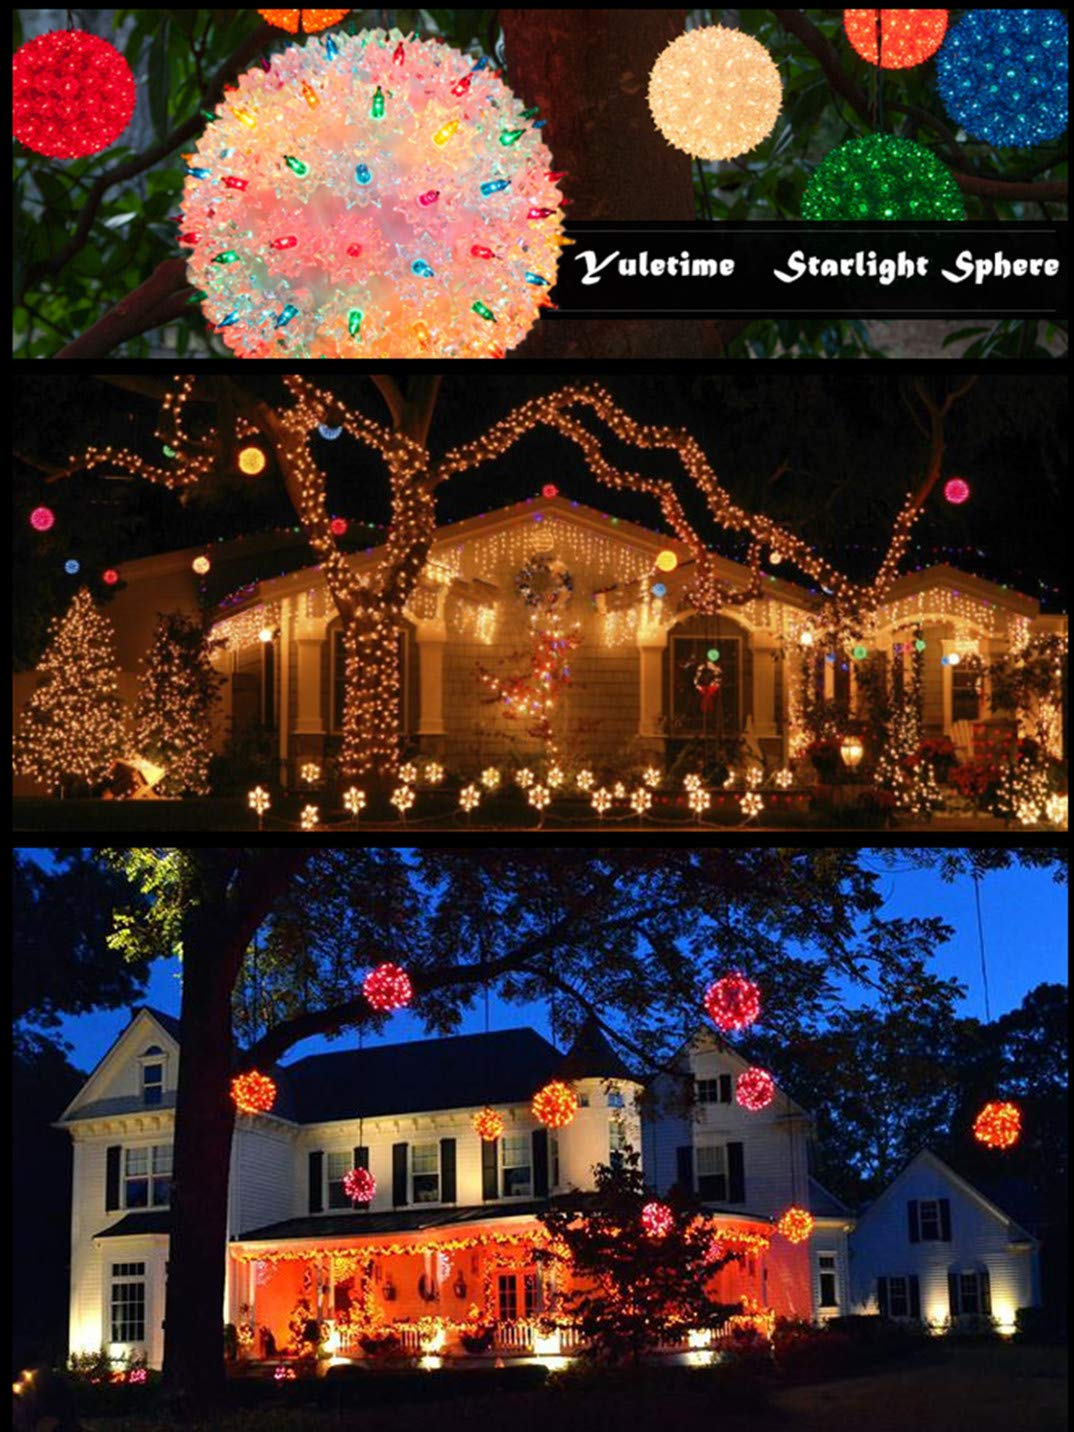 amazoncom yuletime commercial grade starlight sphere lights ul certified hanging christmas ornament yuletide decor lights 6 inch 50 lights